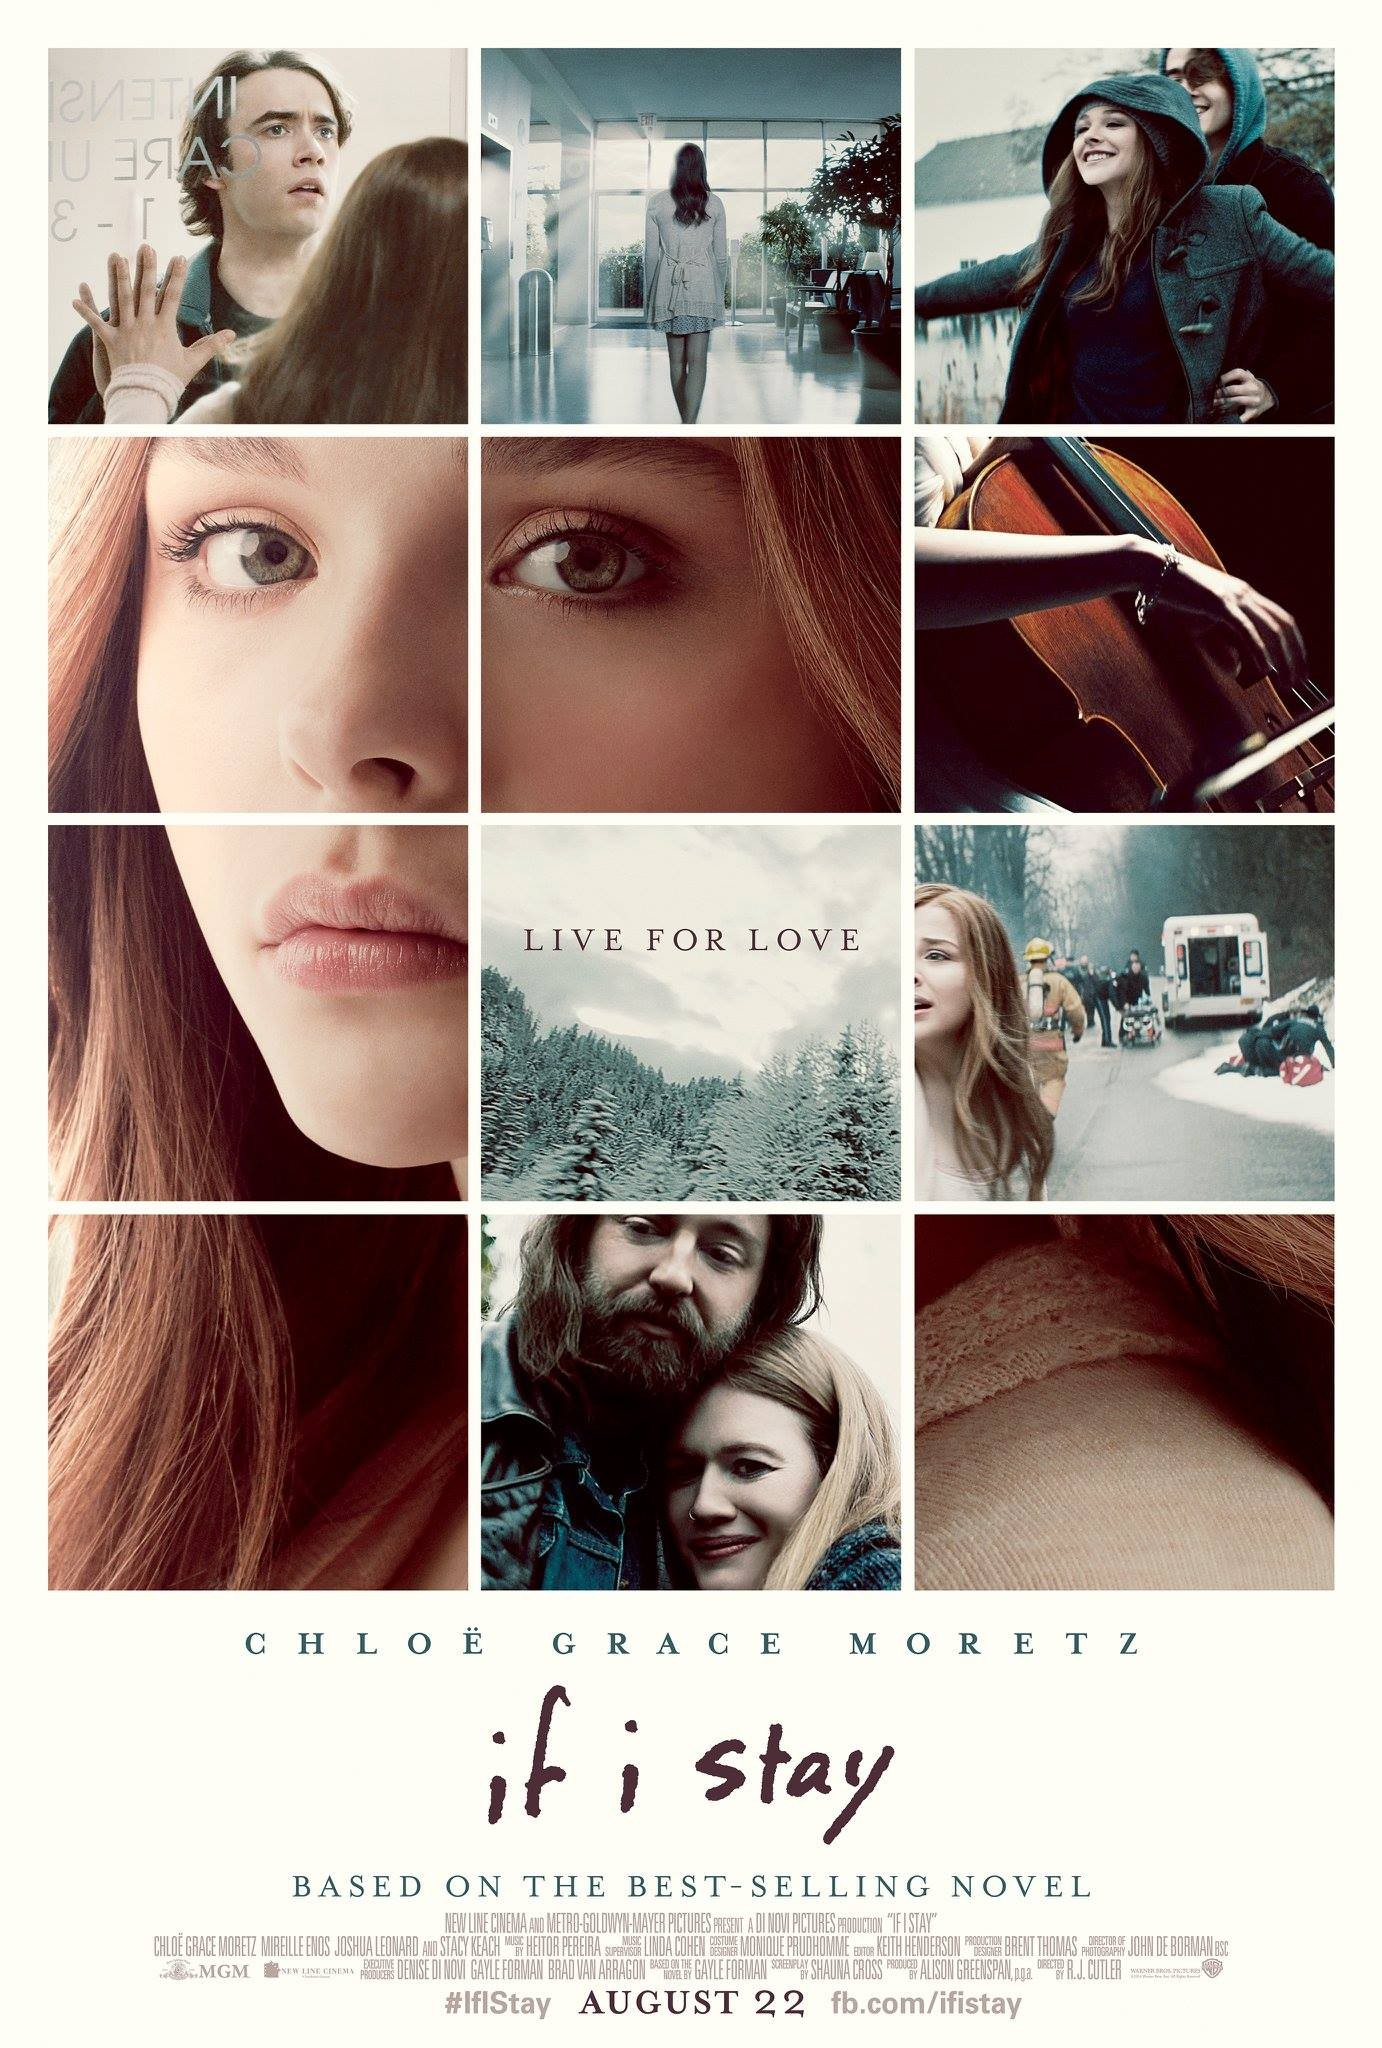 If I Stay-Official Poster Banner PROMO XXLG-02JUNHO2014